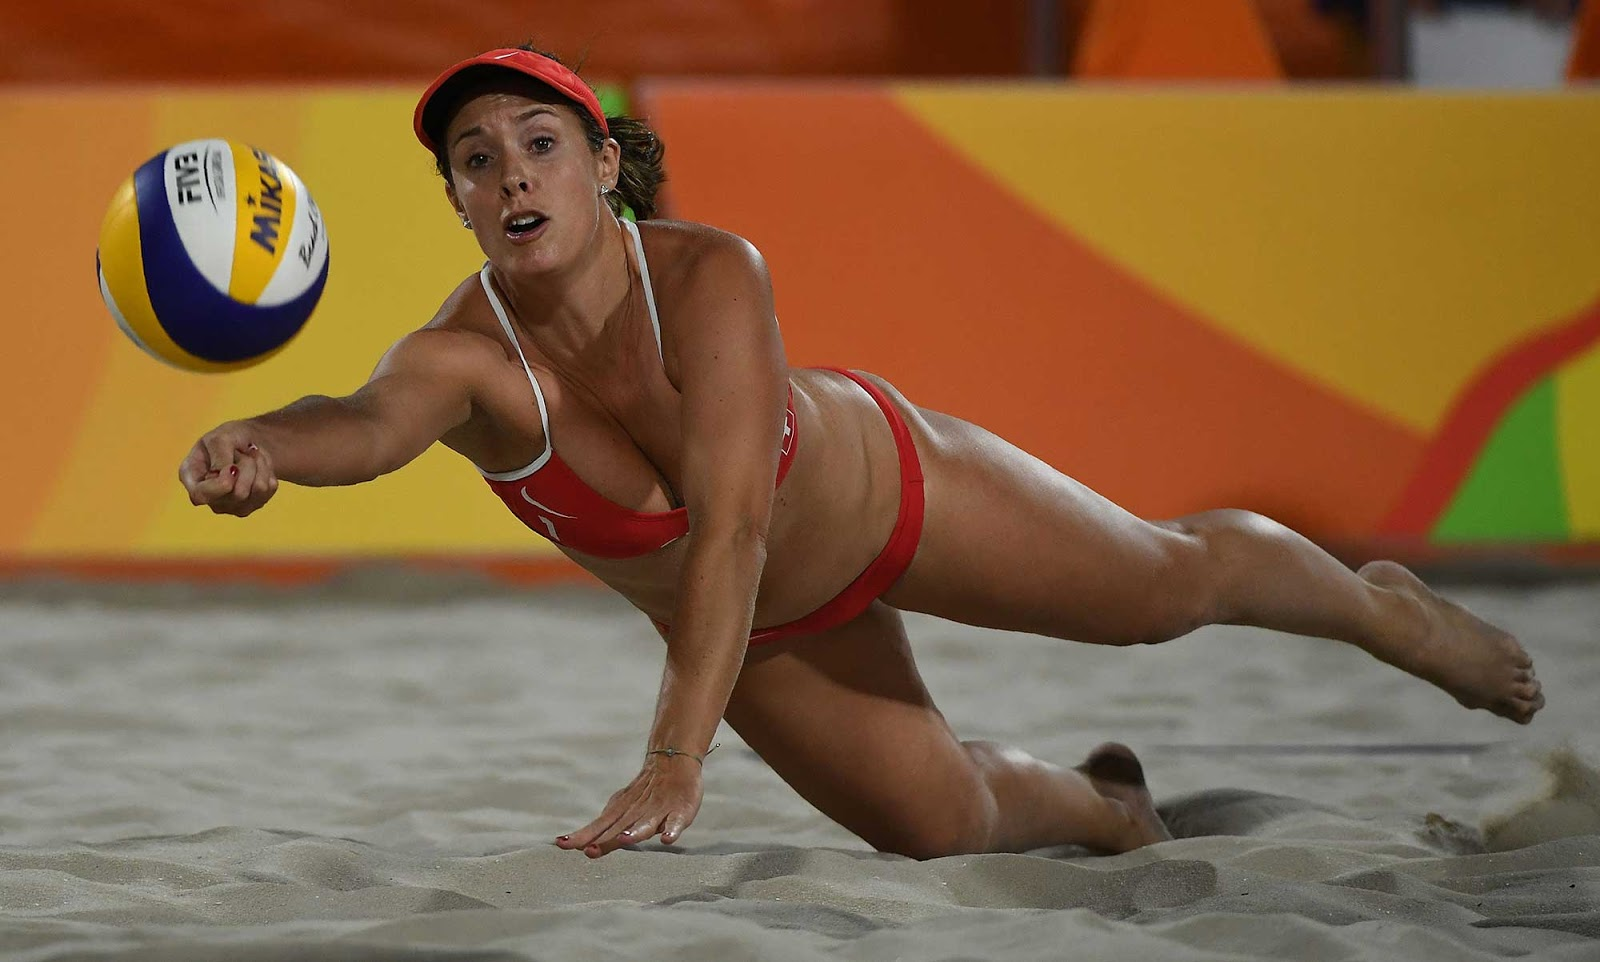 volleyball-big-boobs